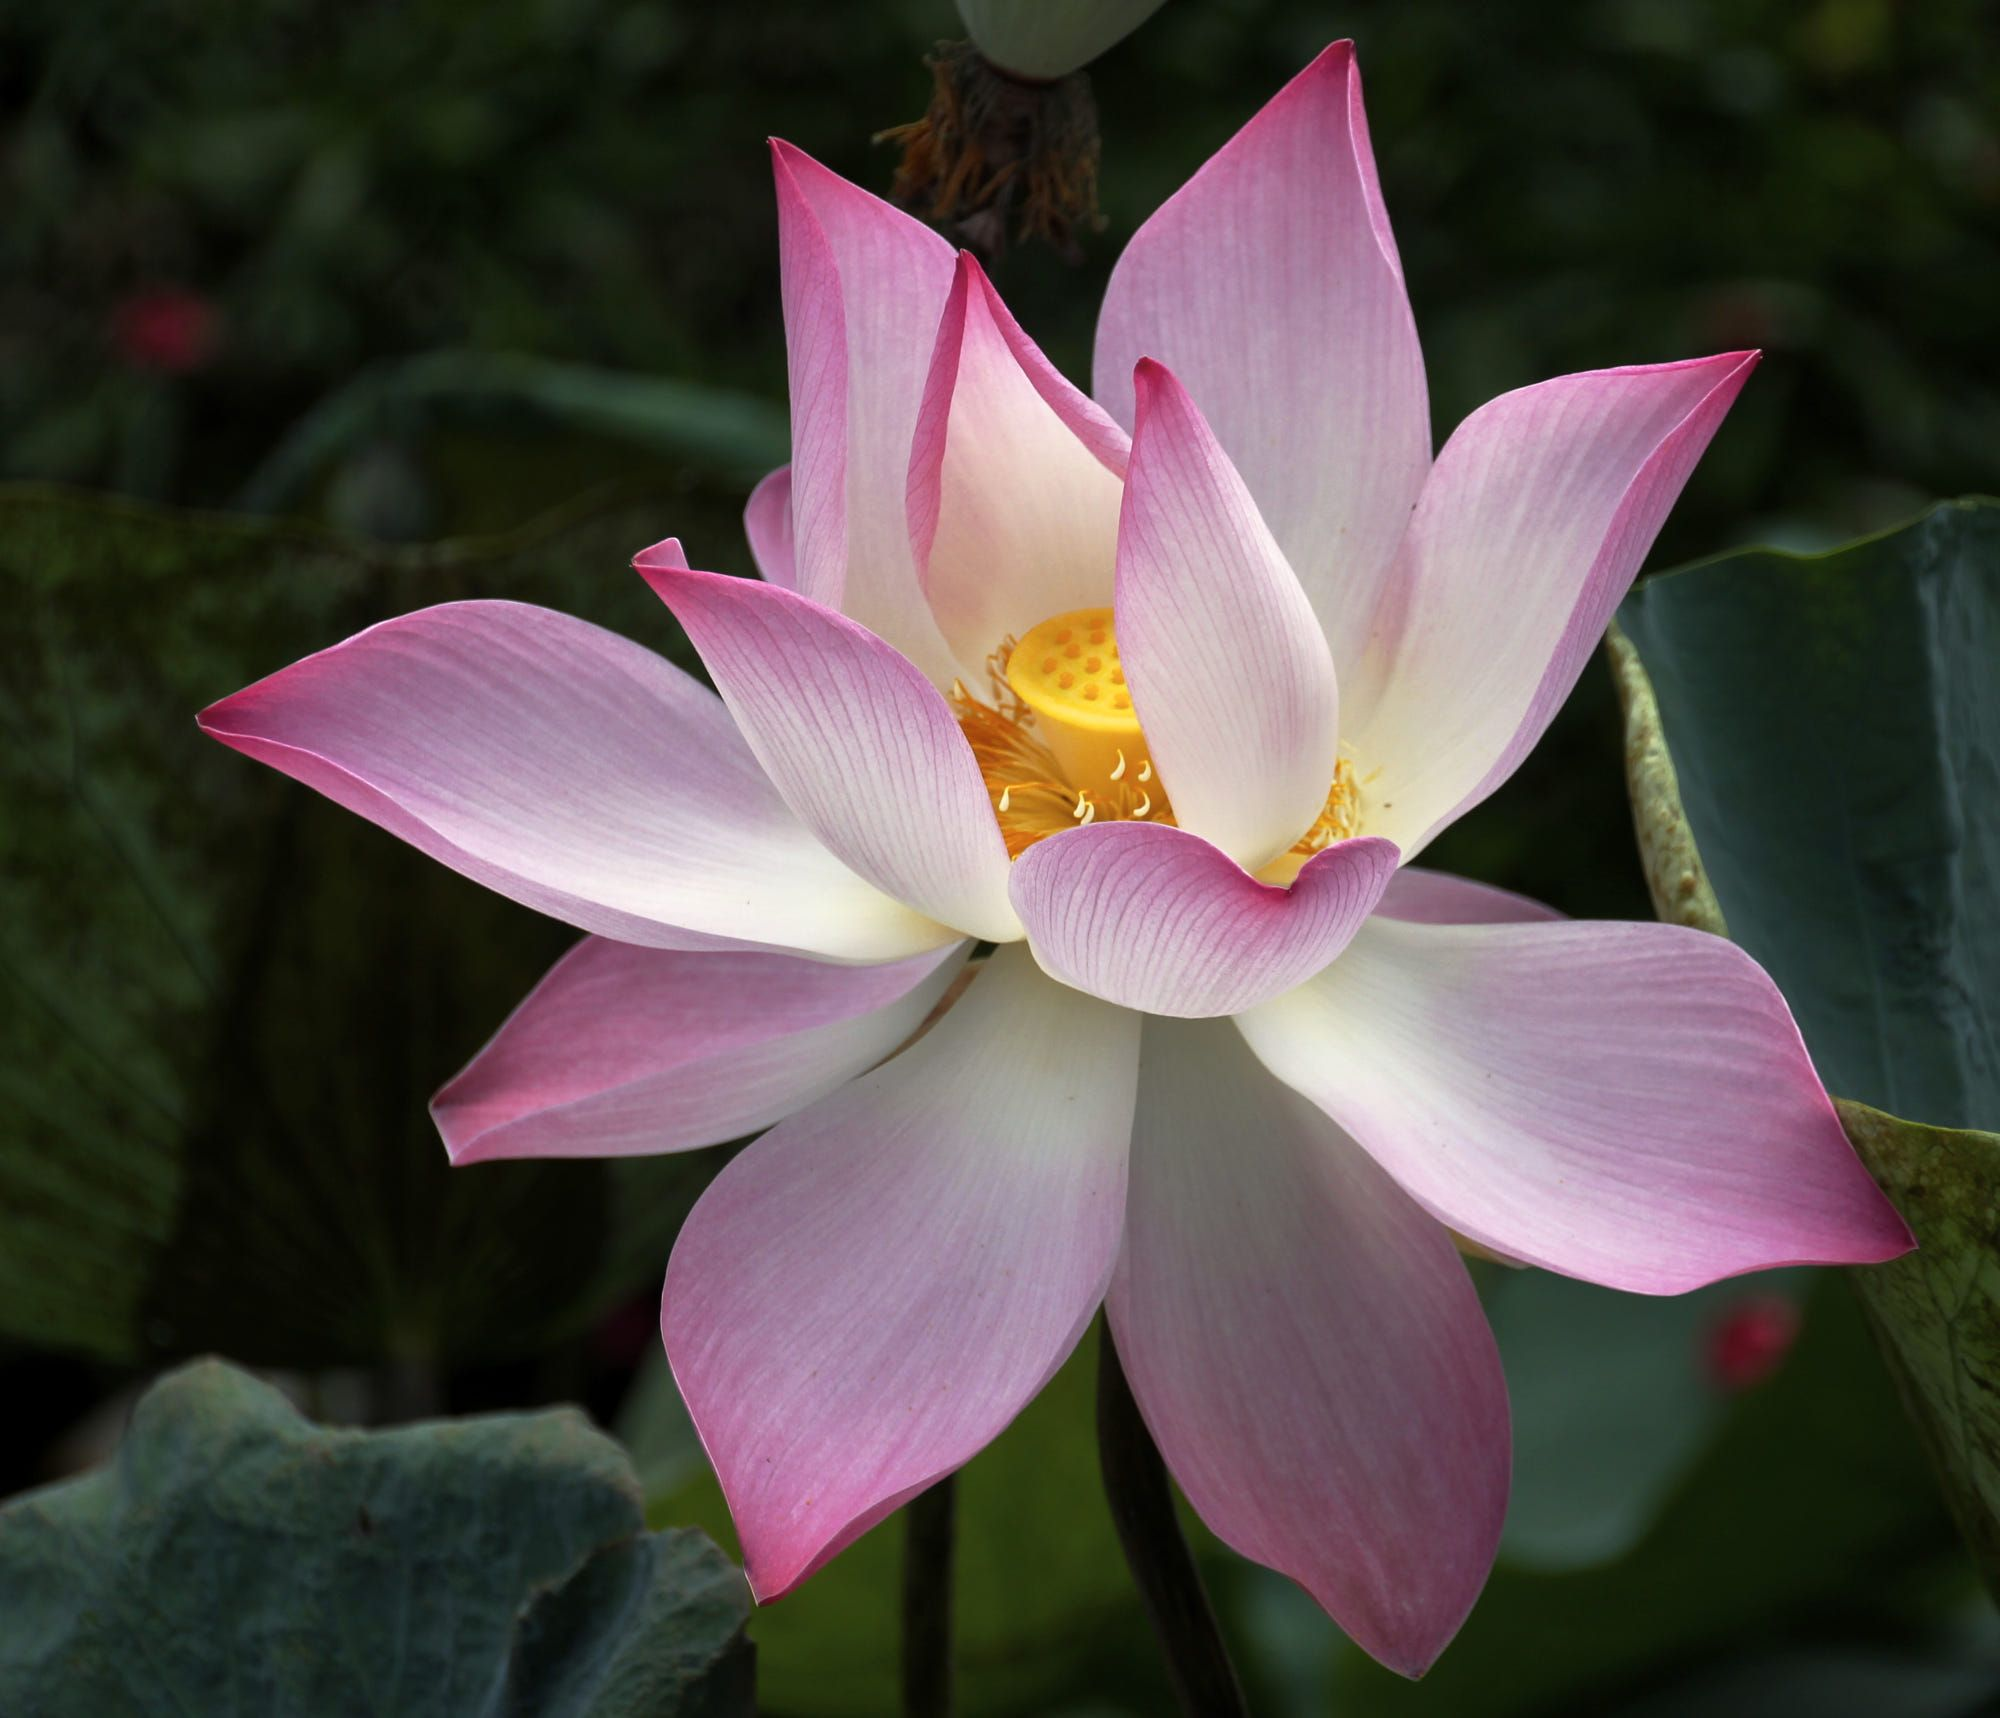 the lotus flower symbolizes good fortune in Buddhism. The